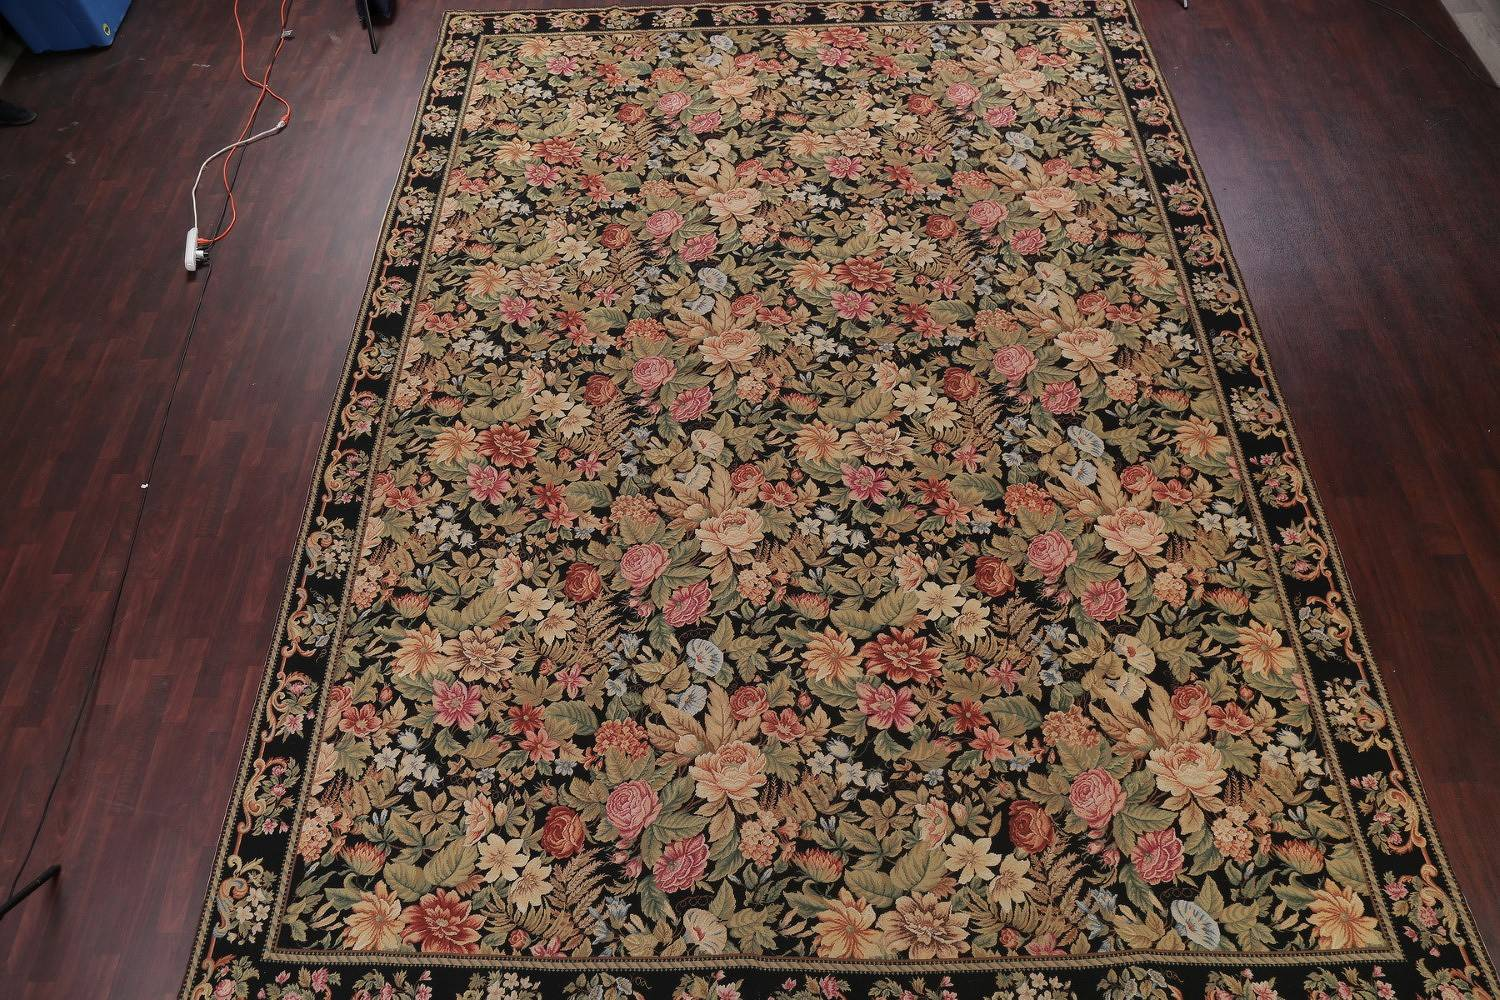 Floral Savonnerie Aubusson Chinese Oriental Hand-Woven Area Rug Wool 12x16